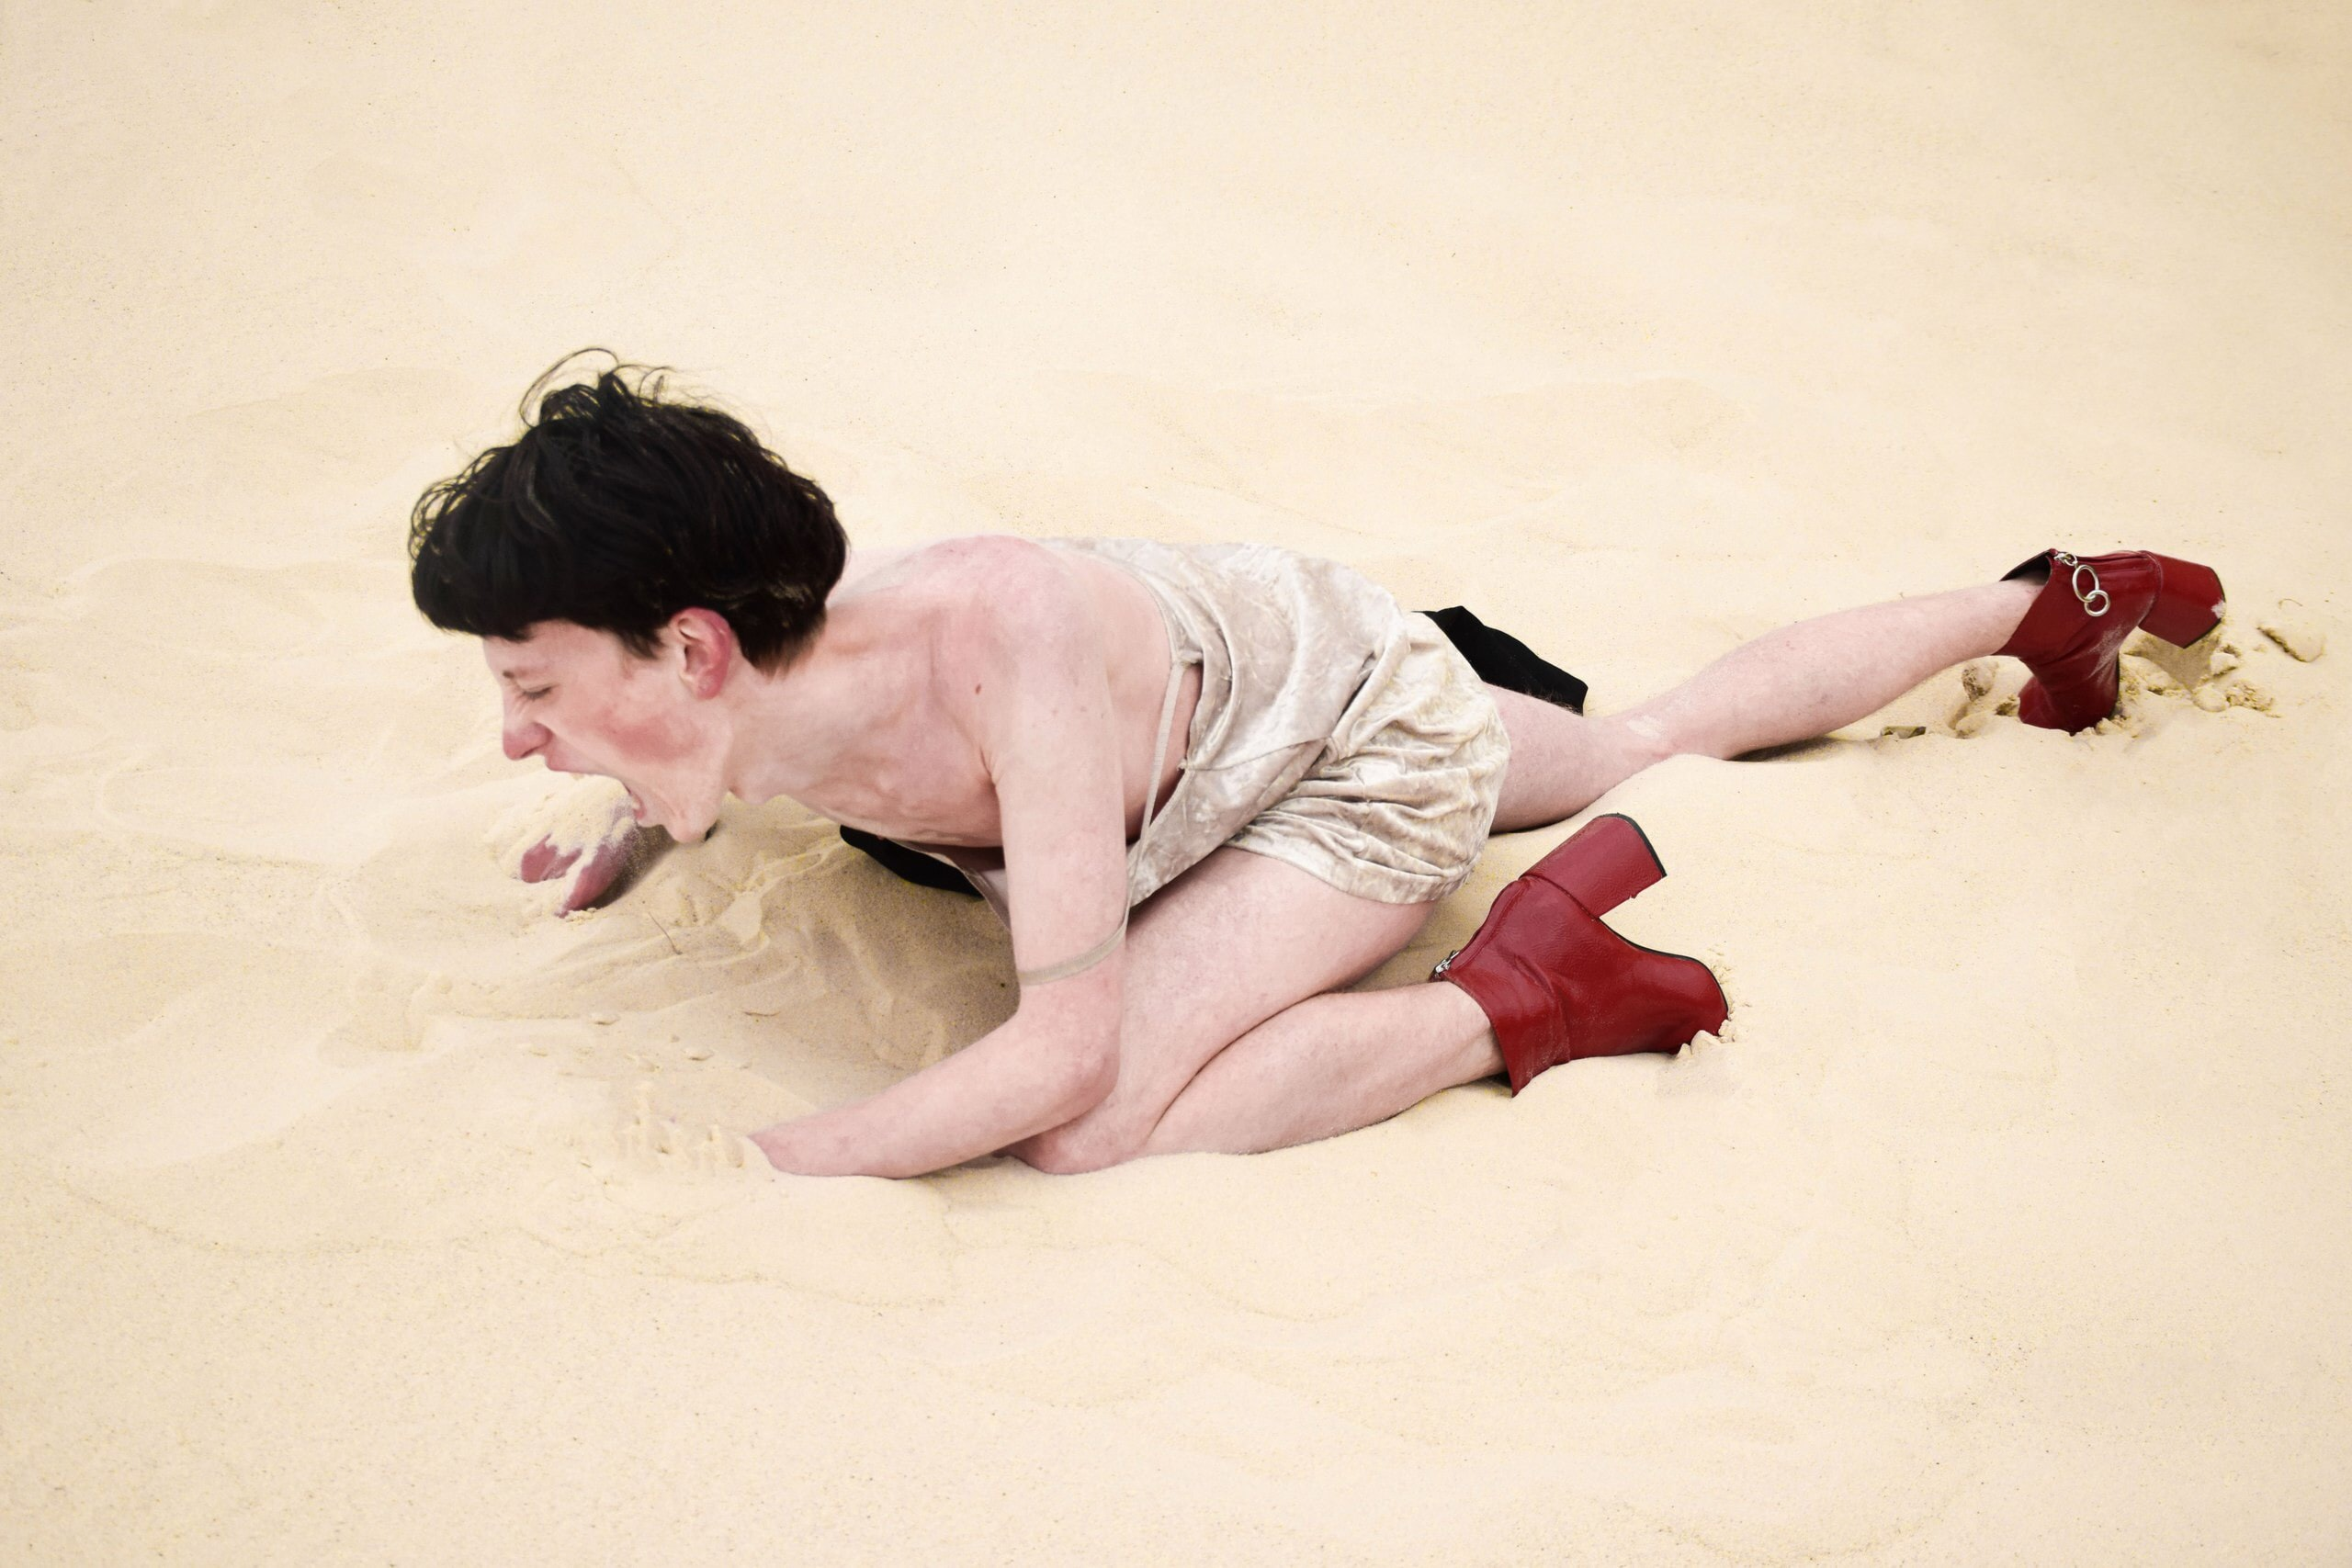 person crawling on sand